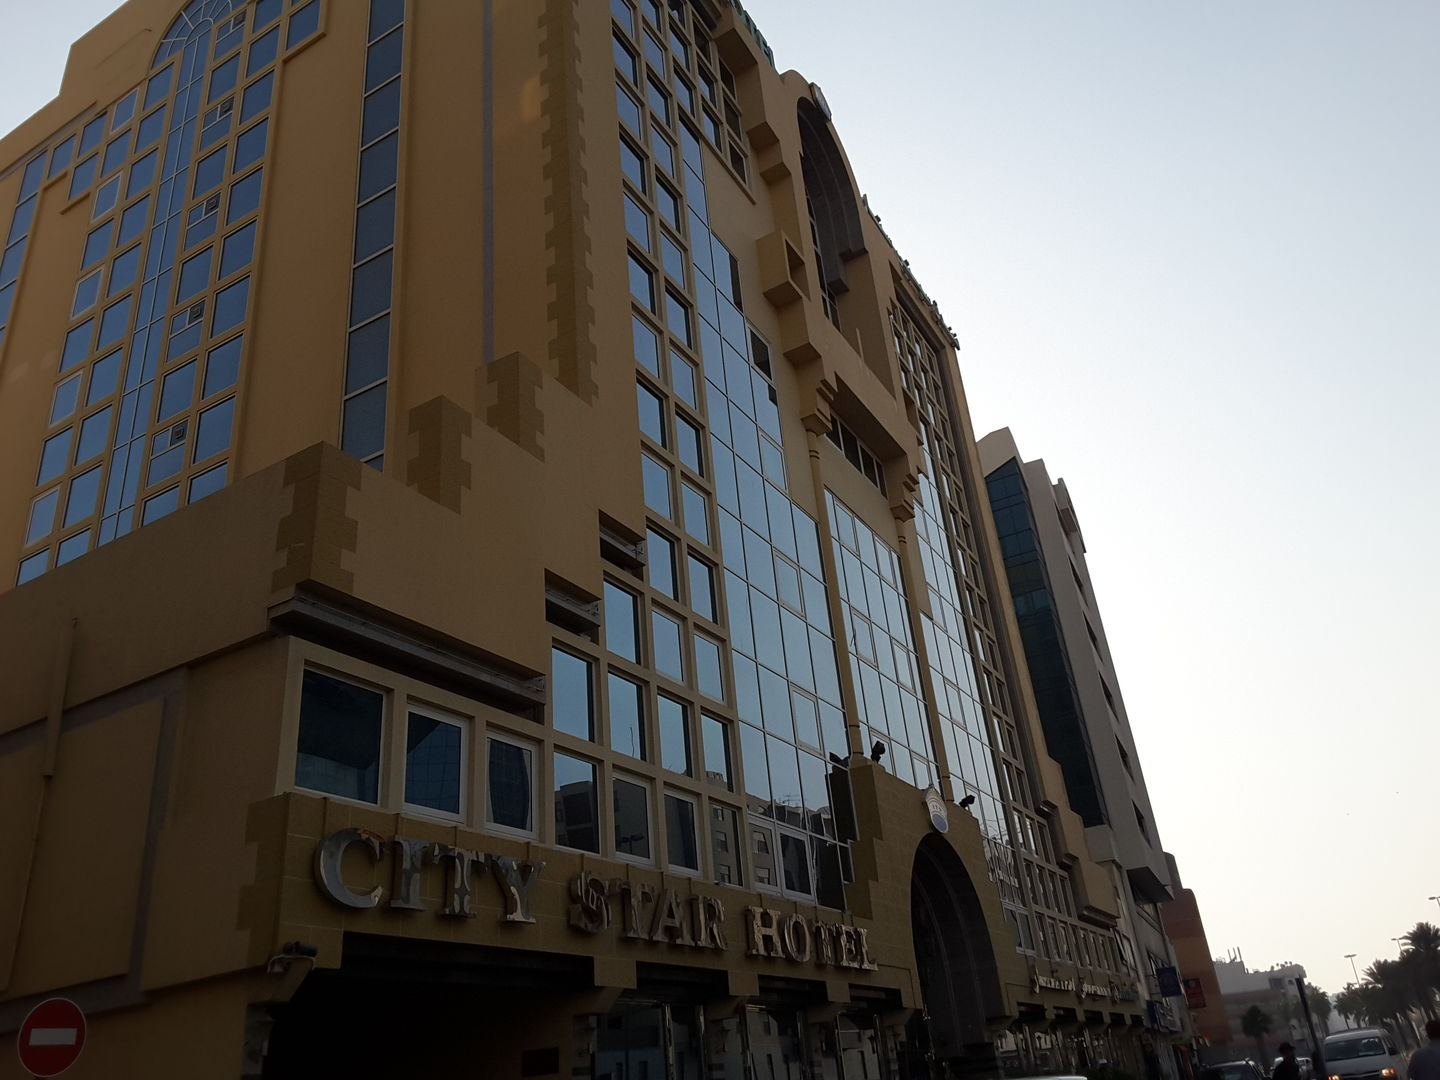 HiDubai-business-city-star-hotel-hotels-tourism-hotels-resorts-al-muraqqabat-dubai-2